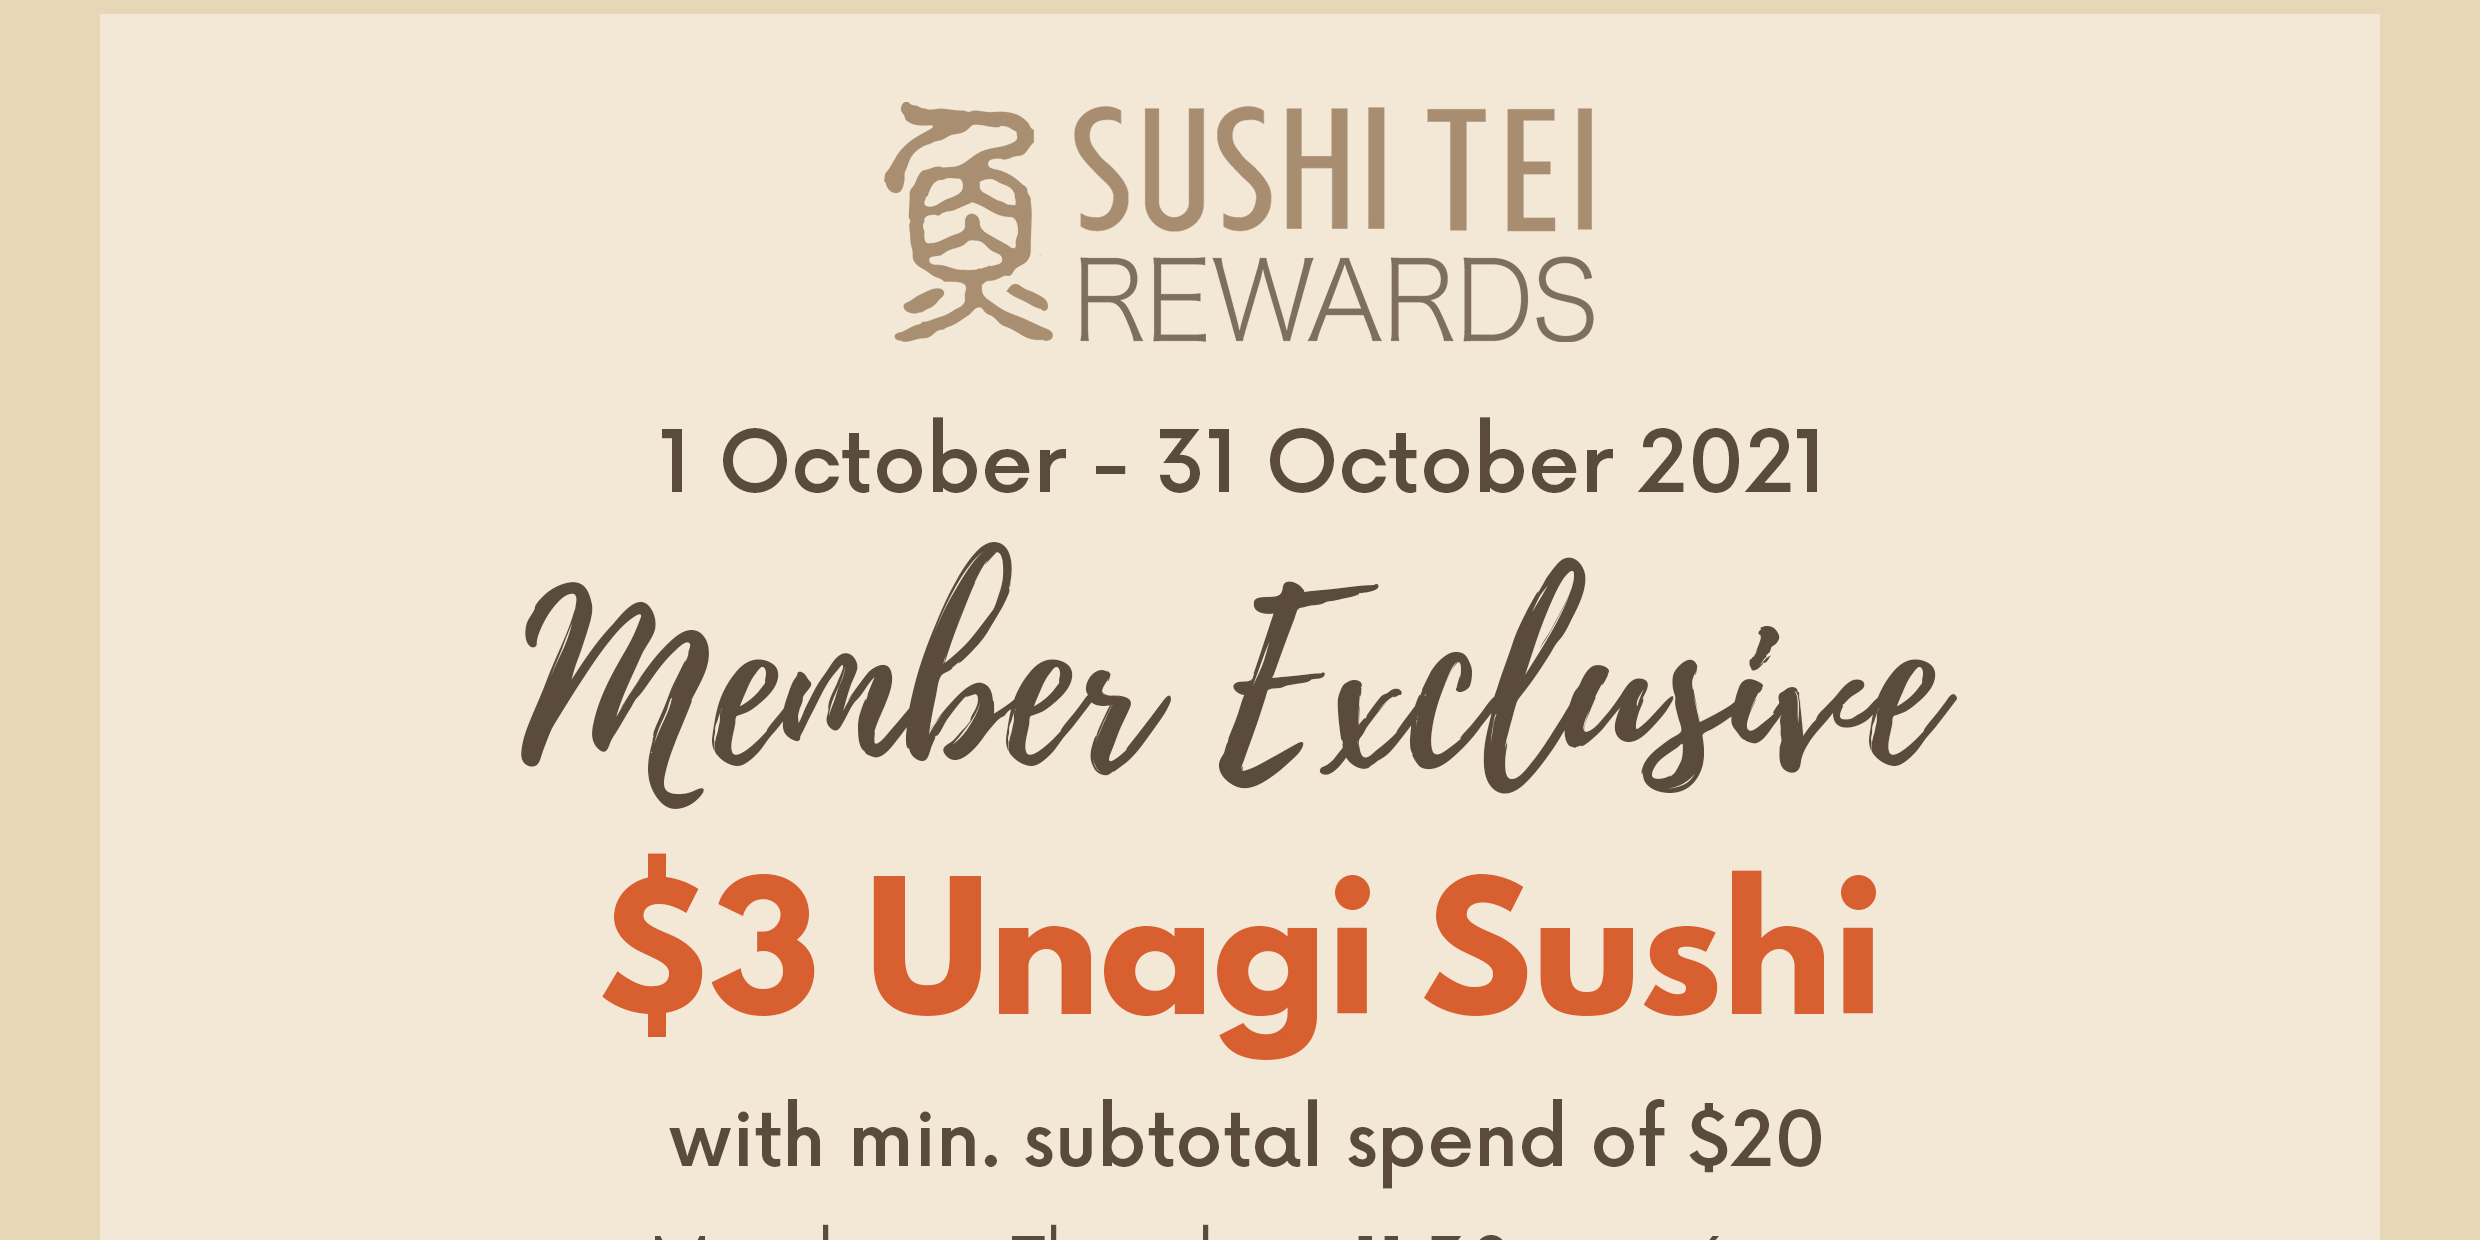 $3 Unagi Sushi for Sushi Tei Members from now till 31 October 2021